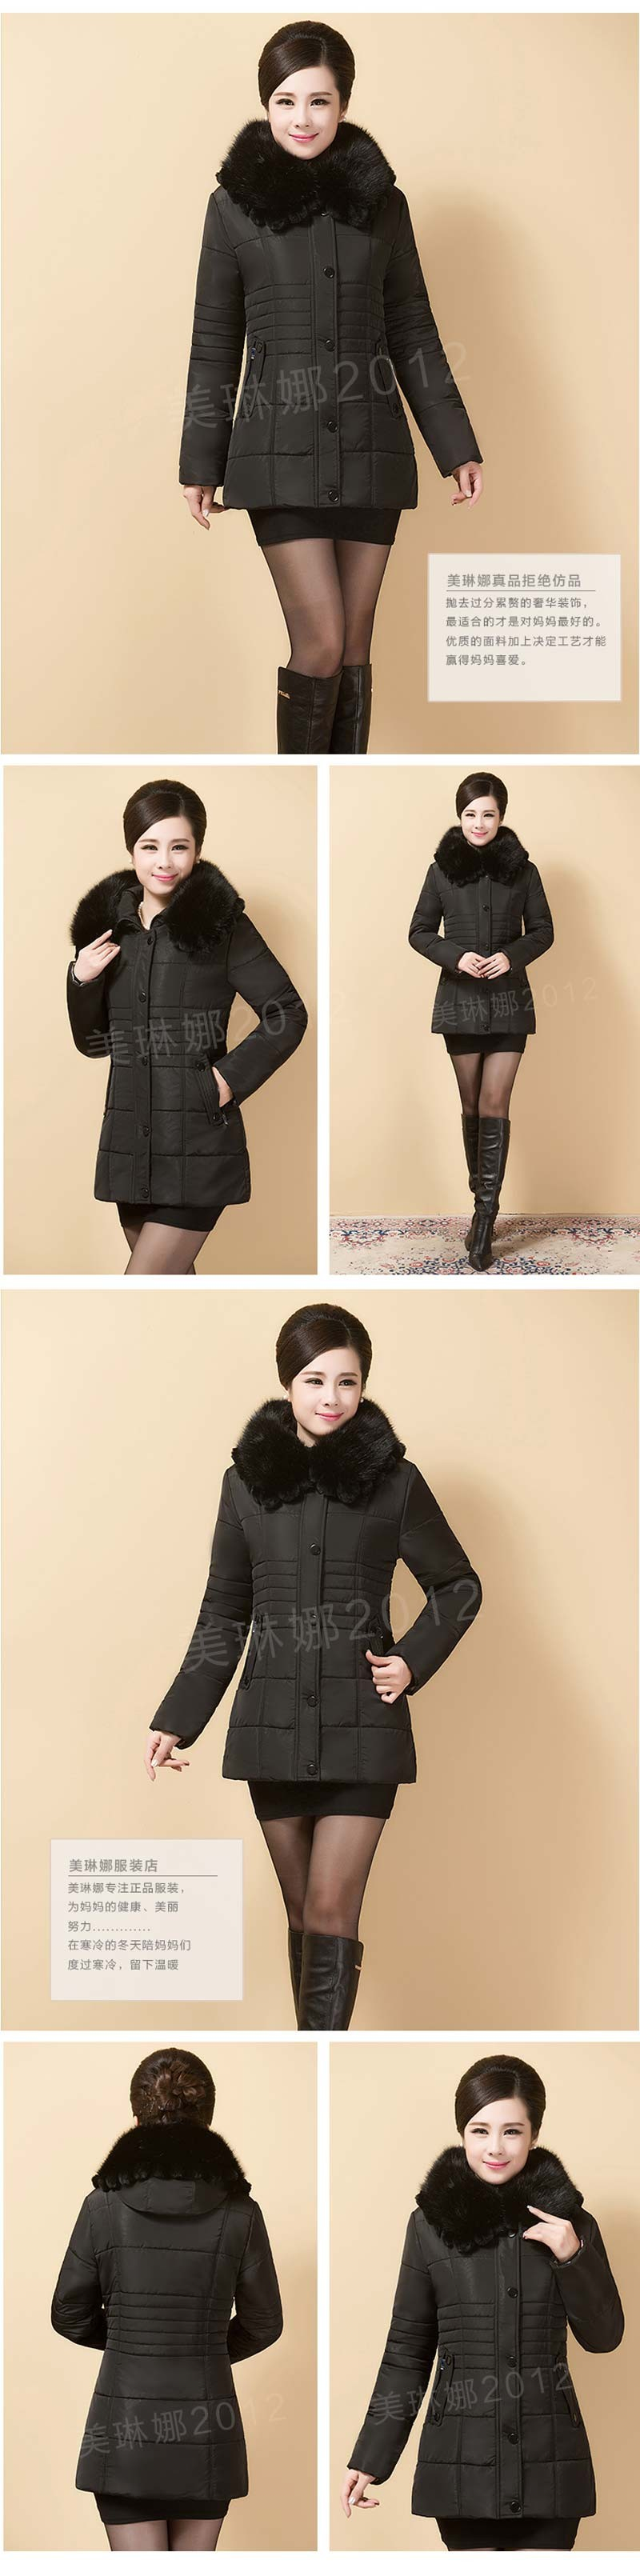 New 2016 winter warm fur collar Thicken Long down cotton jacket women middle-aged slim hooded plus size 6XL cotton Coat AE603